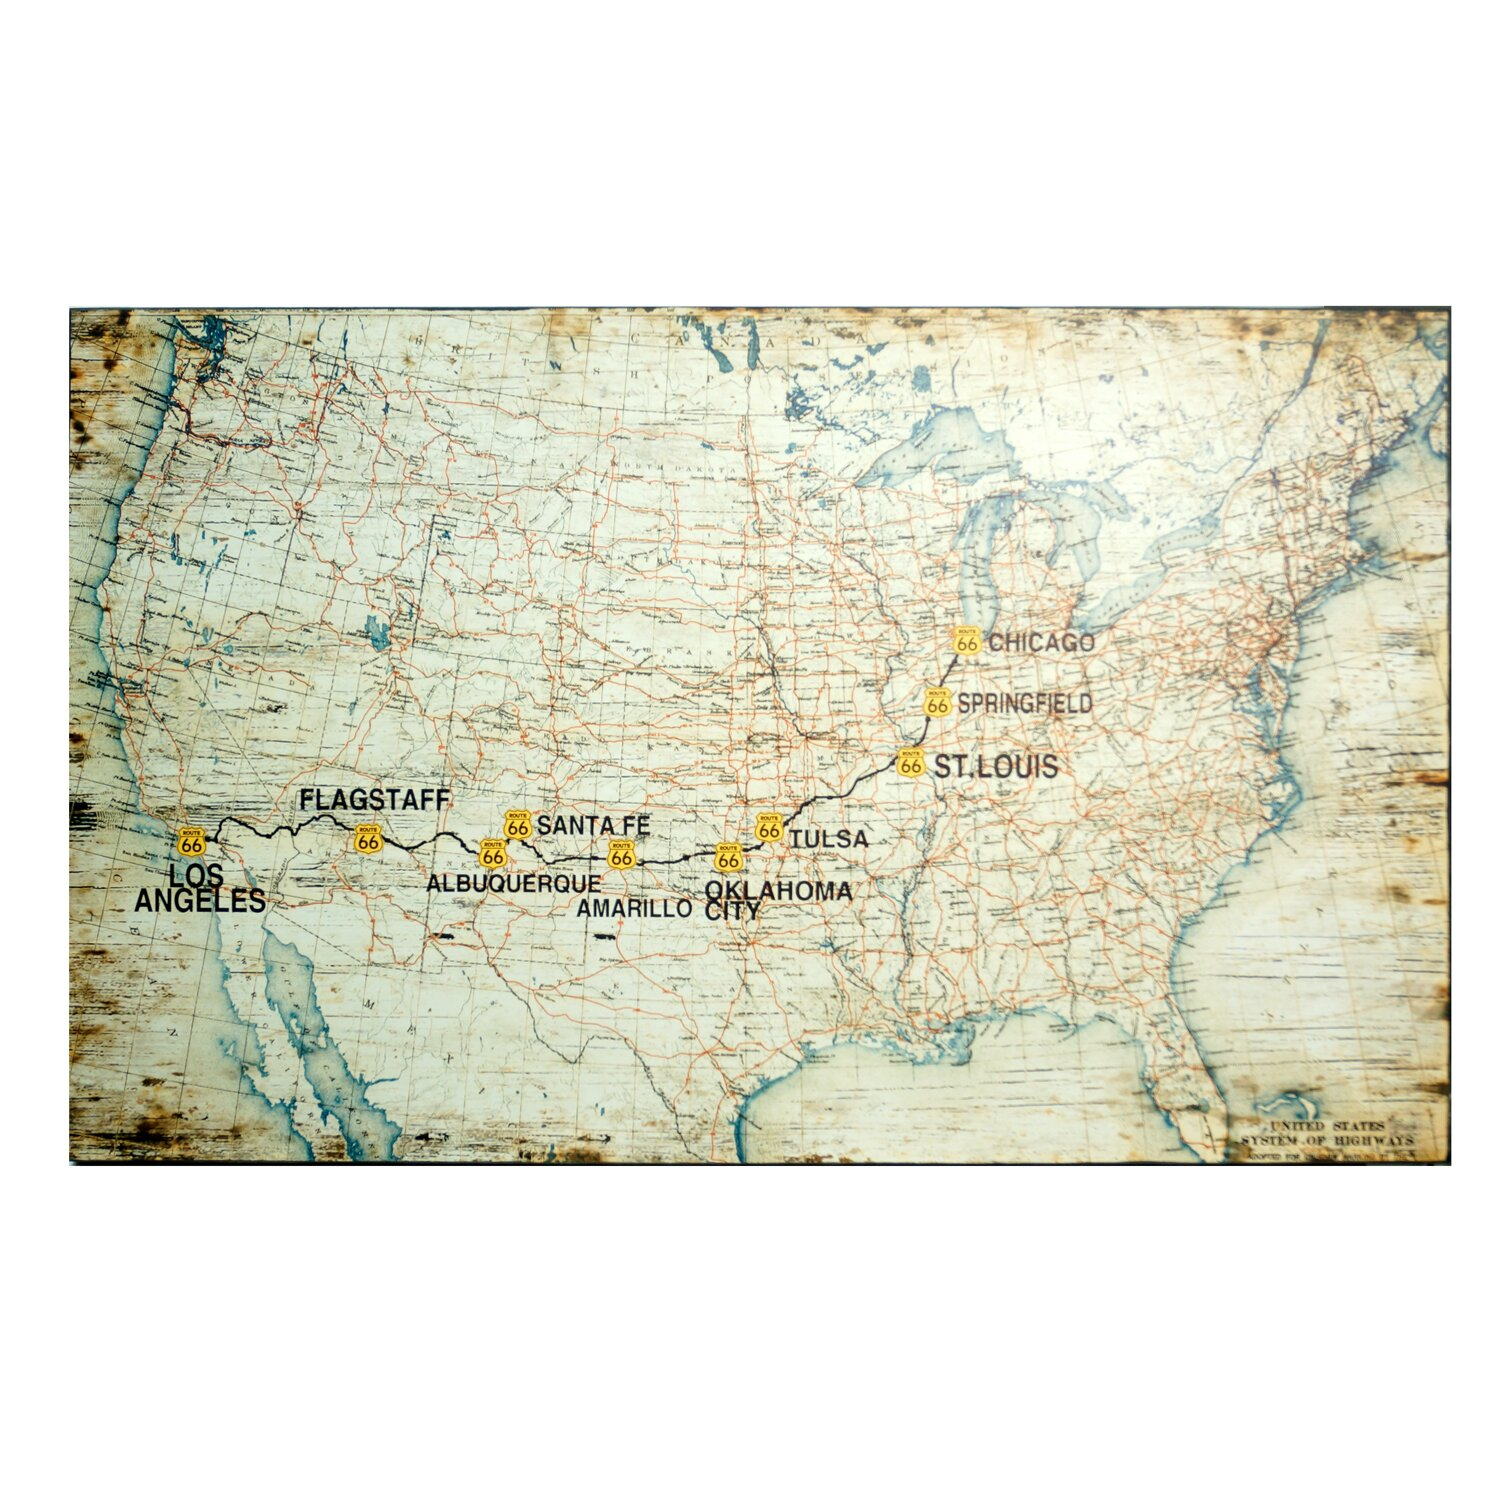 Route  Planner Route  Planner Map Of The Us States Printable - Map us highway route 66